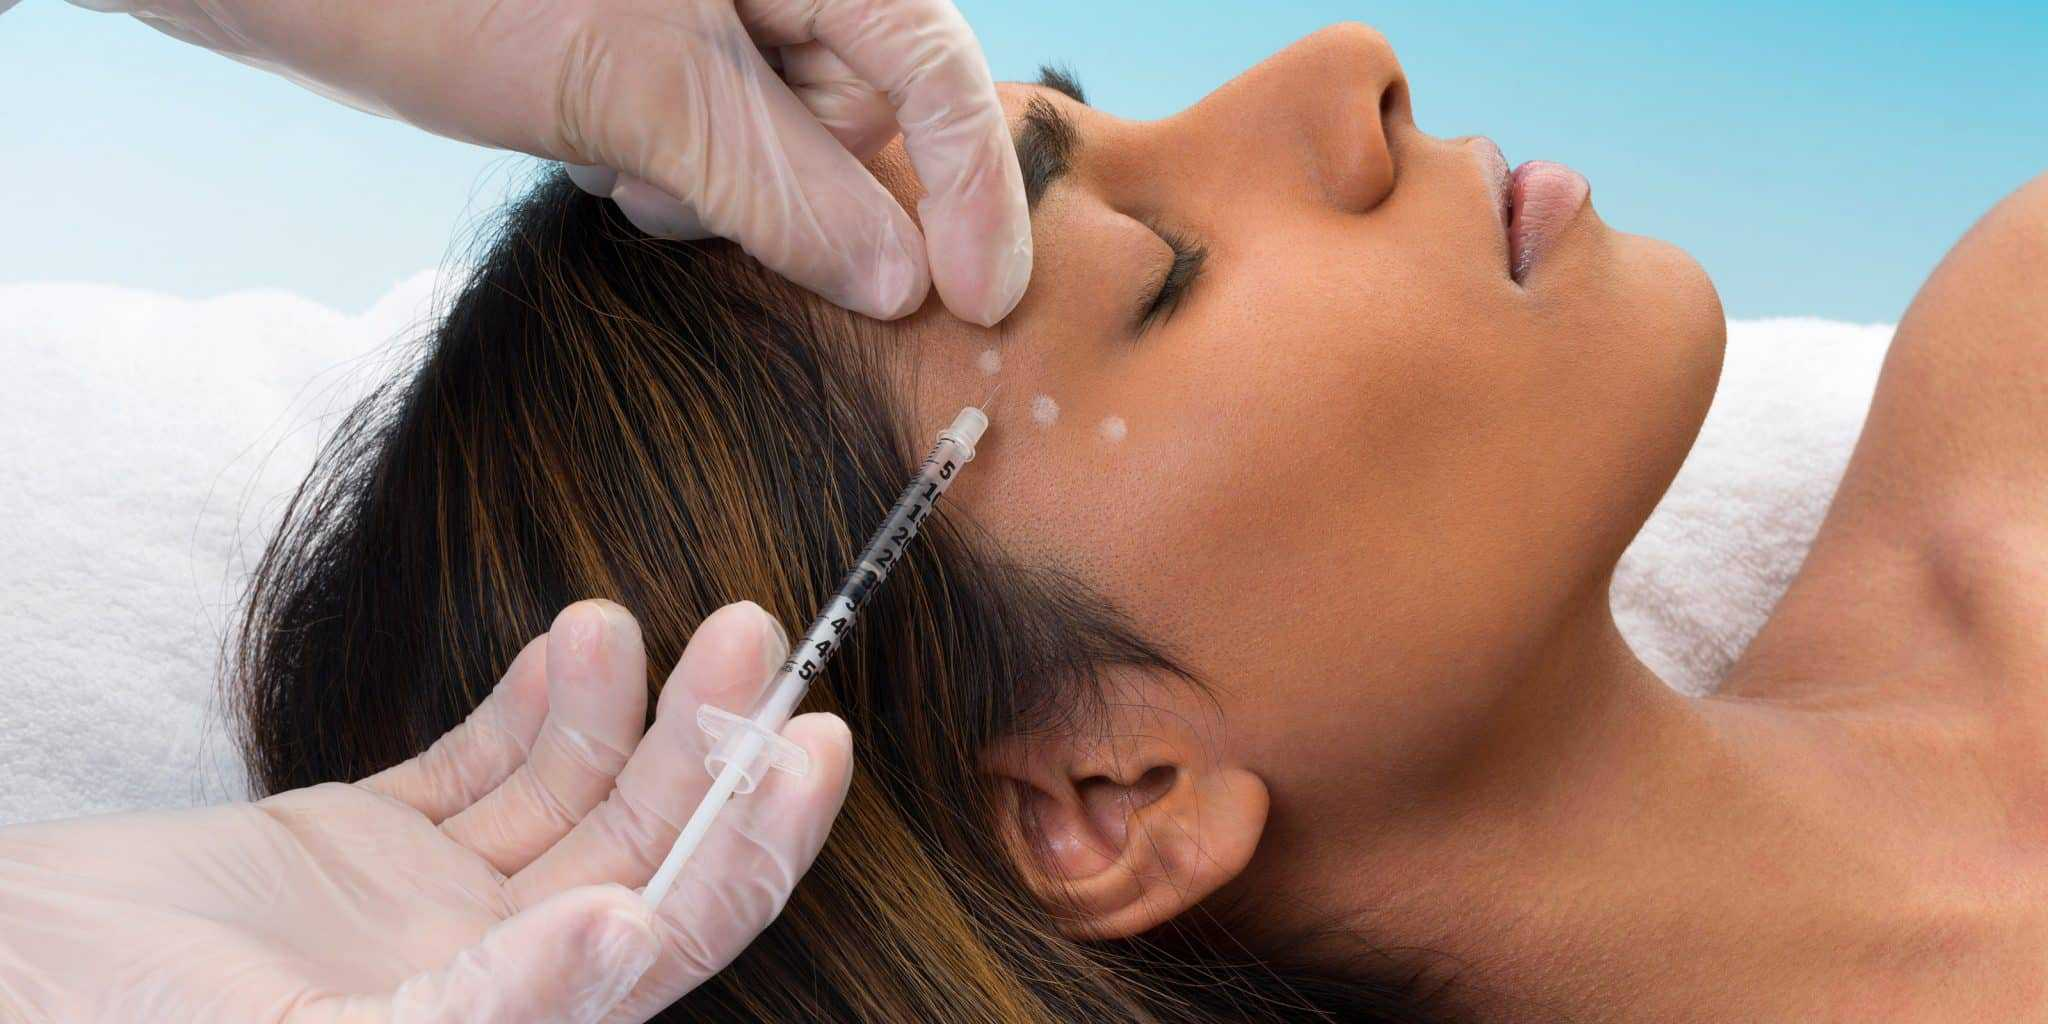 Botox Treatment a solution that may decrease depression woman getting fillers arcarapsychiatry.com Arcara Psychiatry